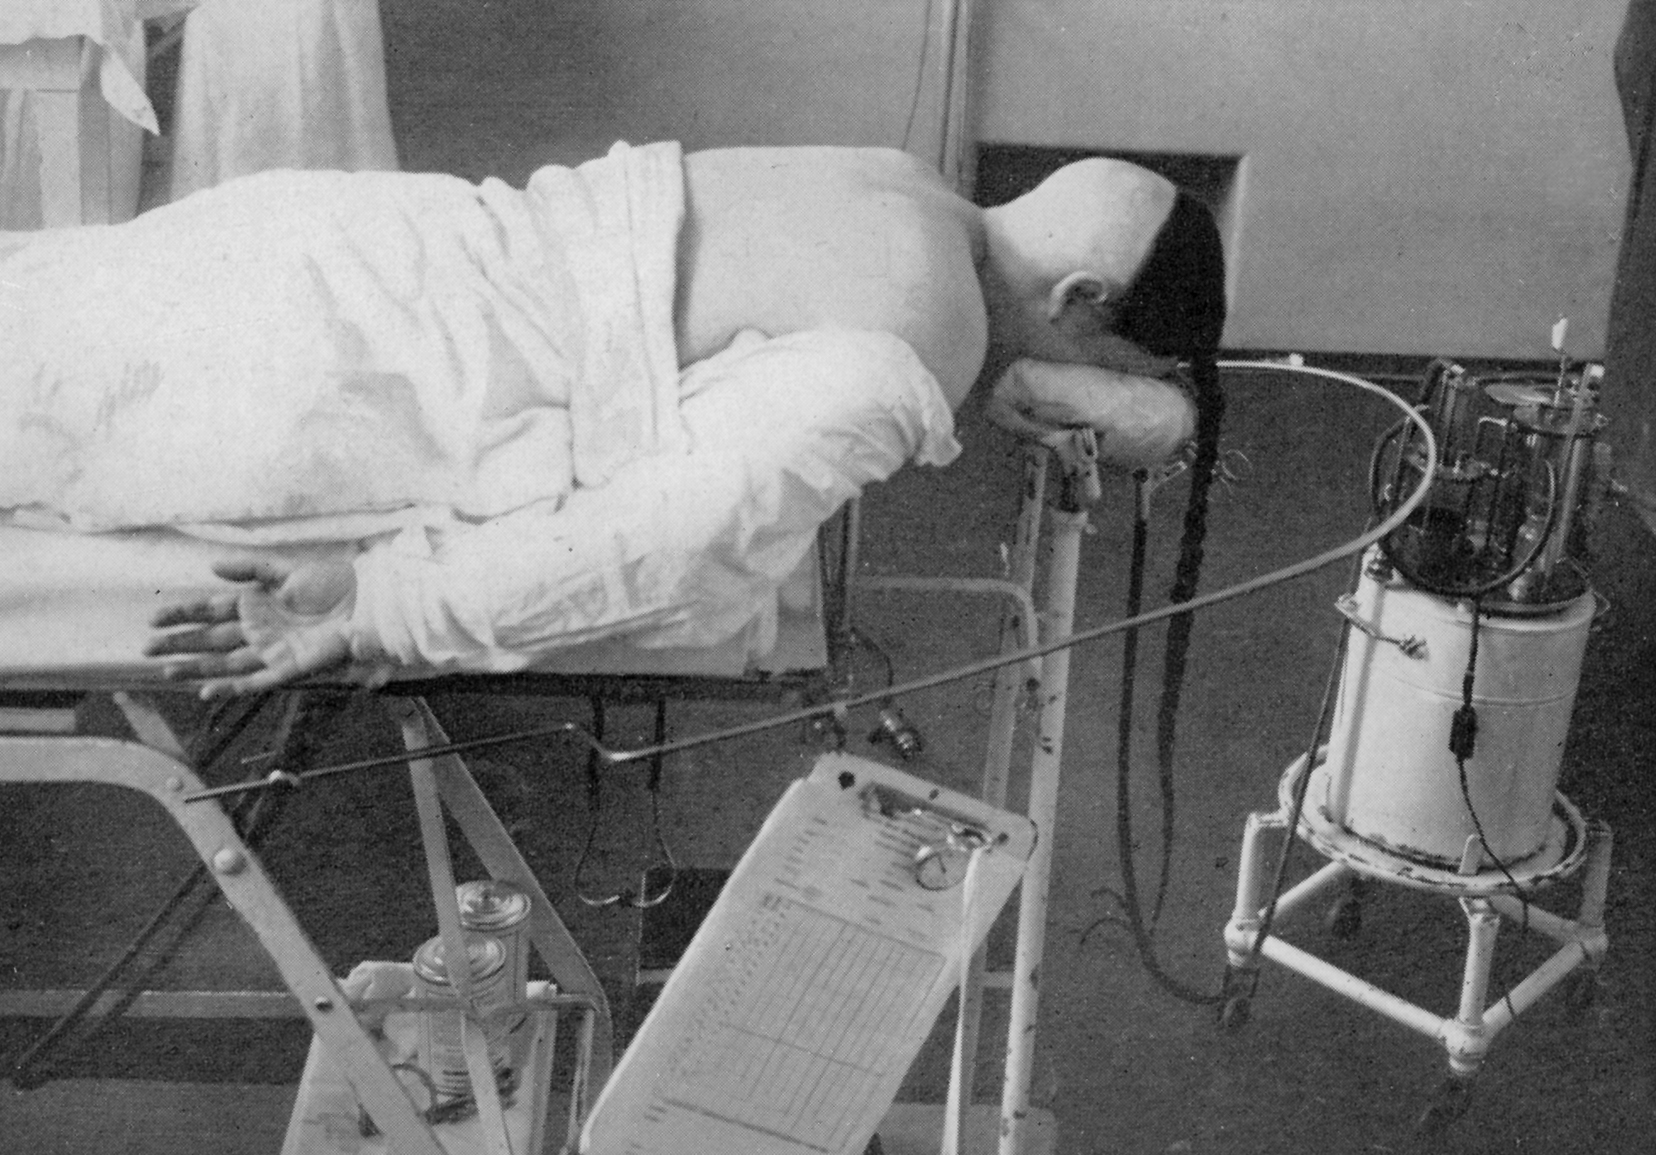 Figure 1: A patient of Harvey Cushing's is shown positioned on the operating room table to undergo resection of her acoustic neuroma. Note the anesthesia machine and the note pad used for recording anesthesia details (circa ~1930)(Photo courtesy of the Cushing Brain Tumor Registry at Yale University.)